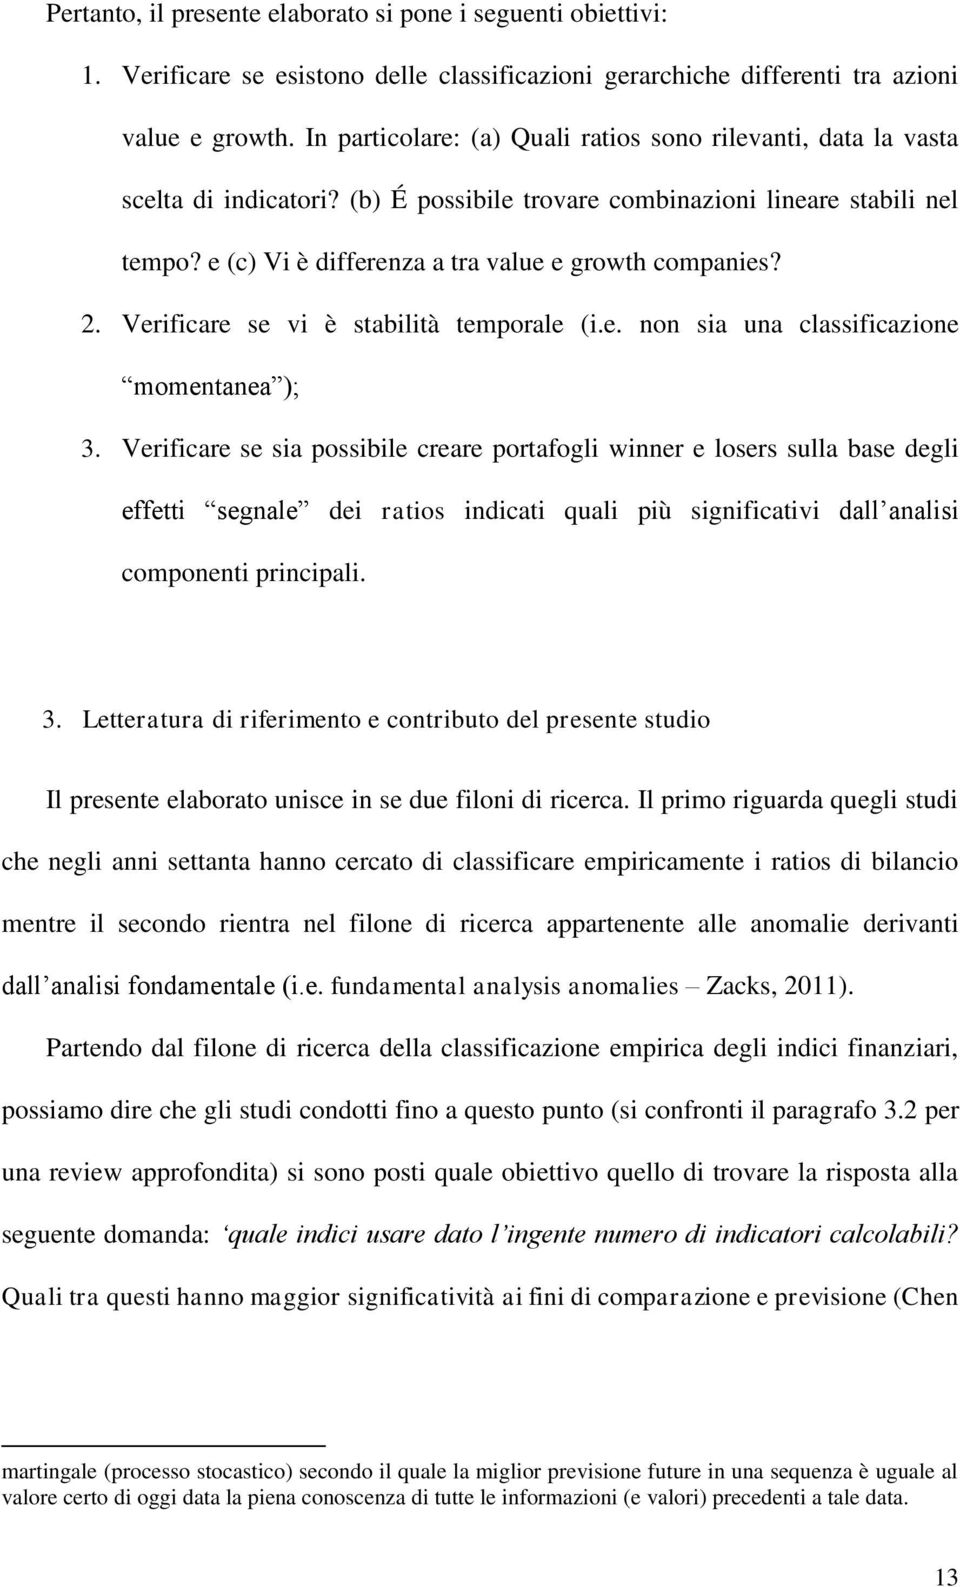 e (c) Vi è differenza a tra value e growth companies? 2. Verificare se vi è stabilità temporale (i.e. non sia una classificazione momentanea ); 3.